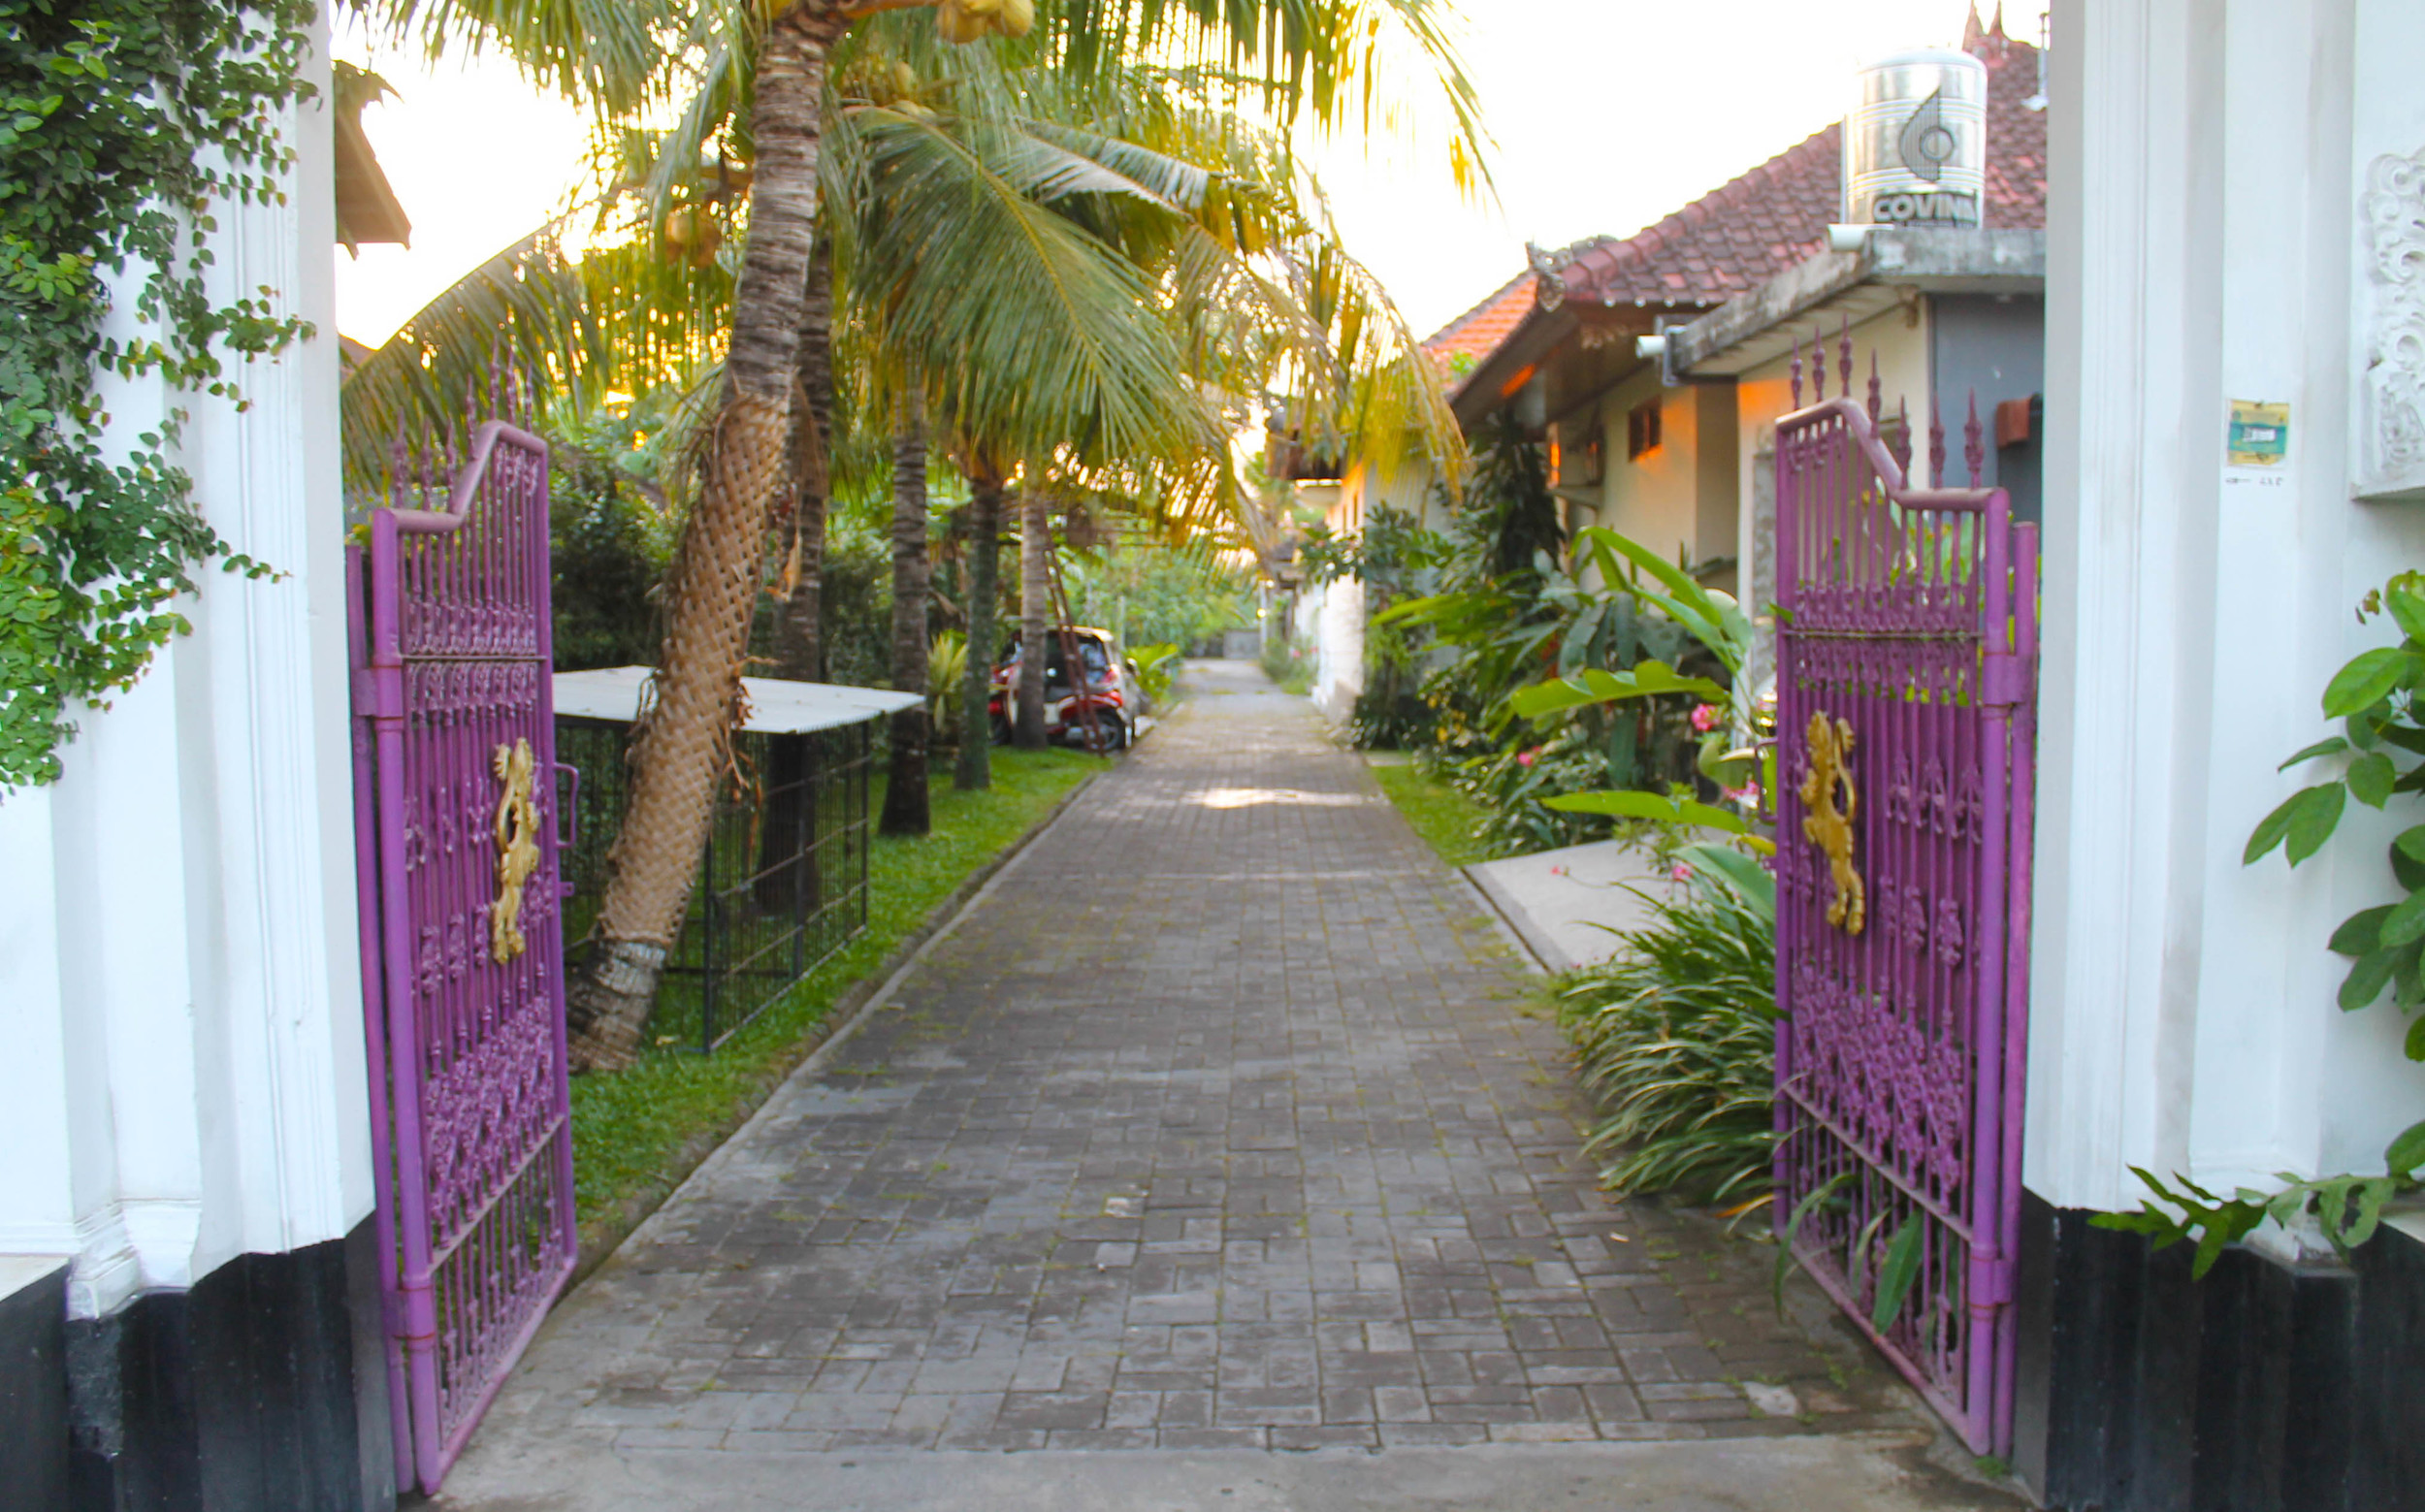 Purple gated entrance which has ruined me because now I want all of my future homes to have purple gated entrances.